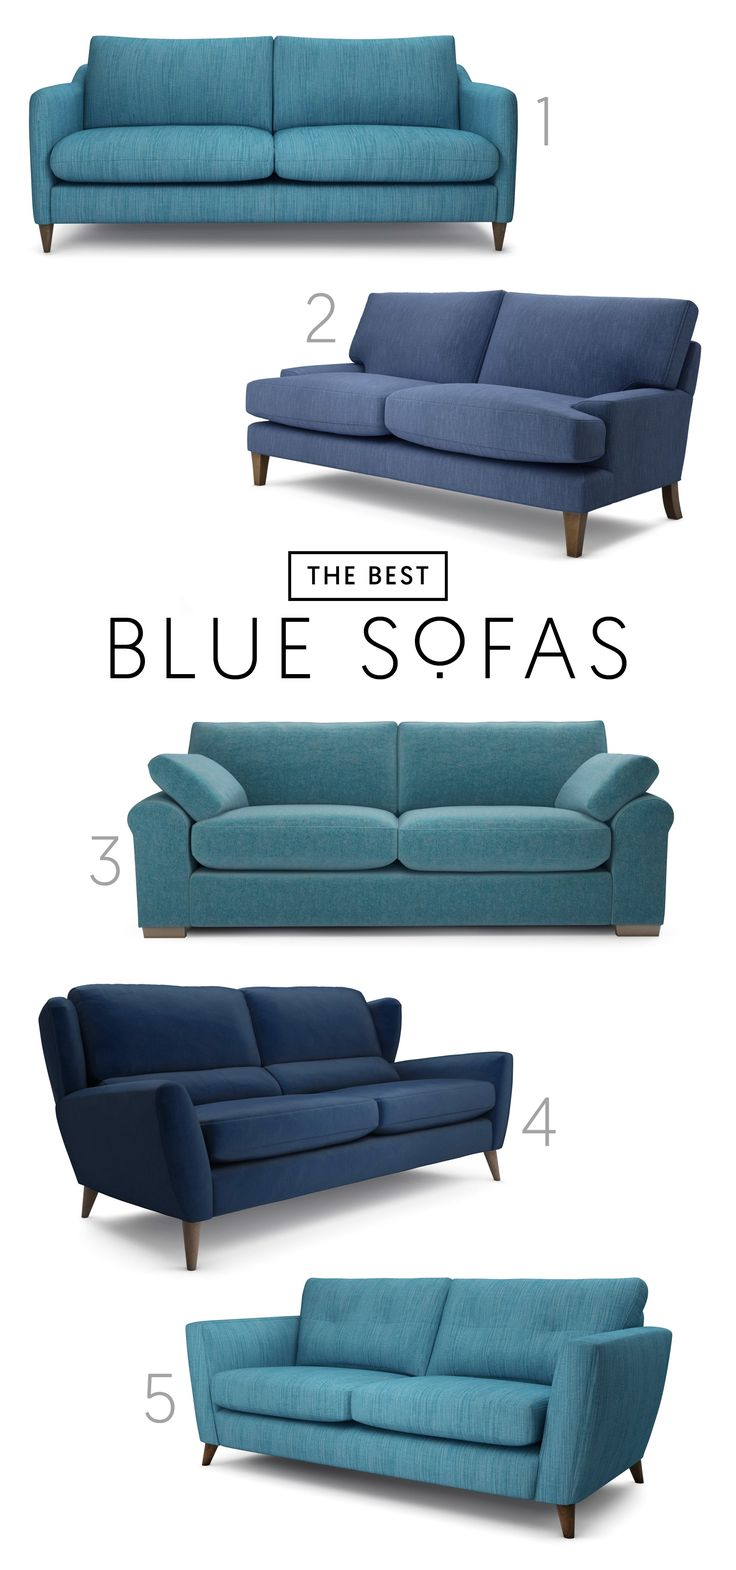 The Best 5 Blue Sofas | Discover Our Favourite Blue Sofas From The Lounge Co .